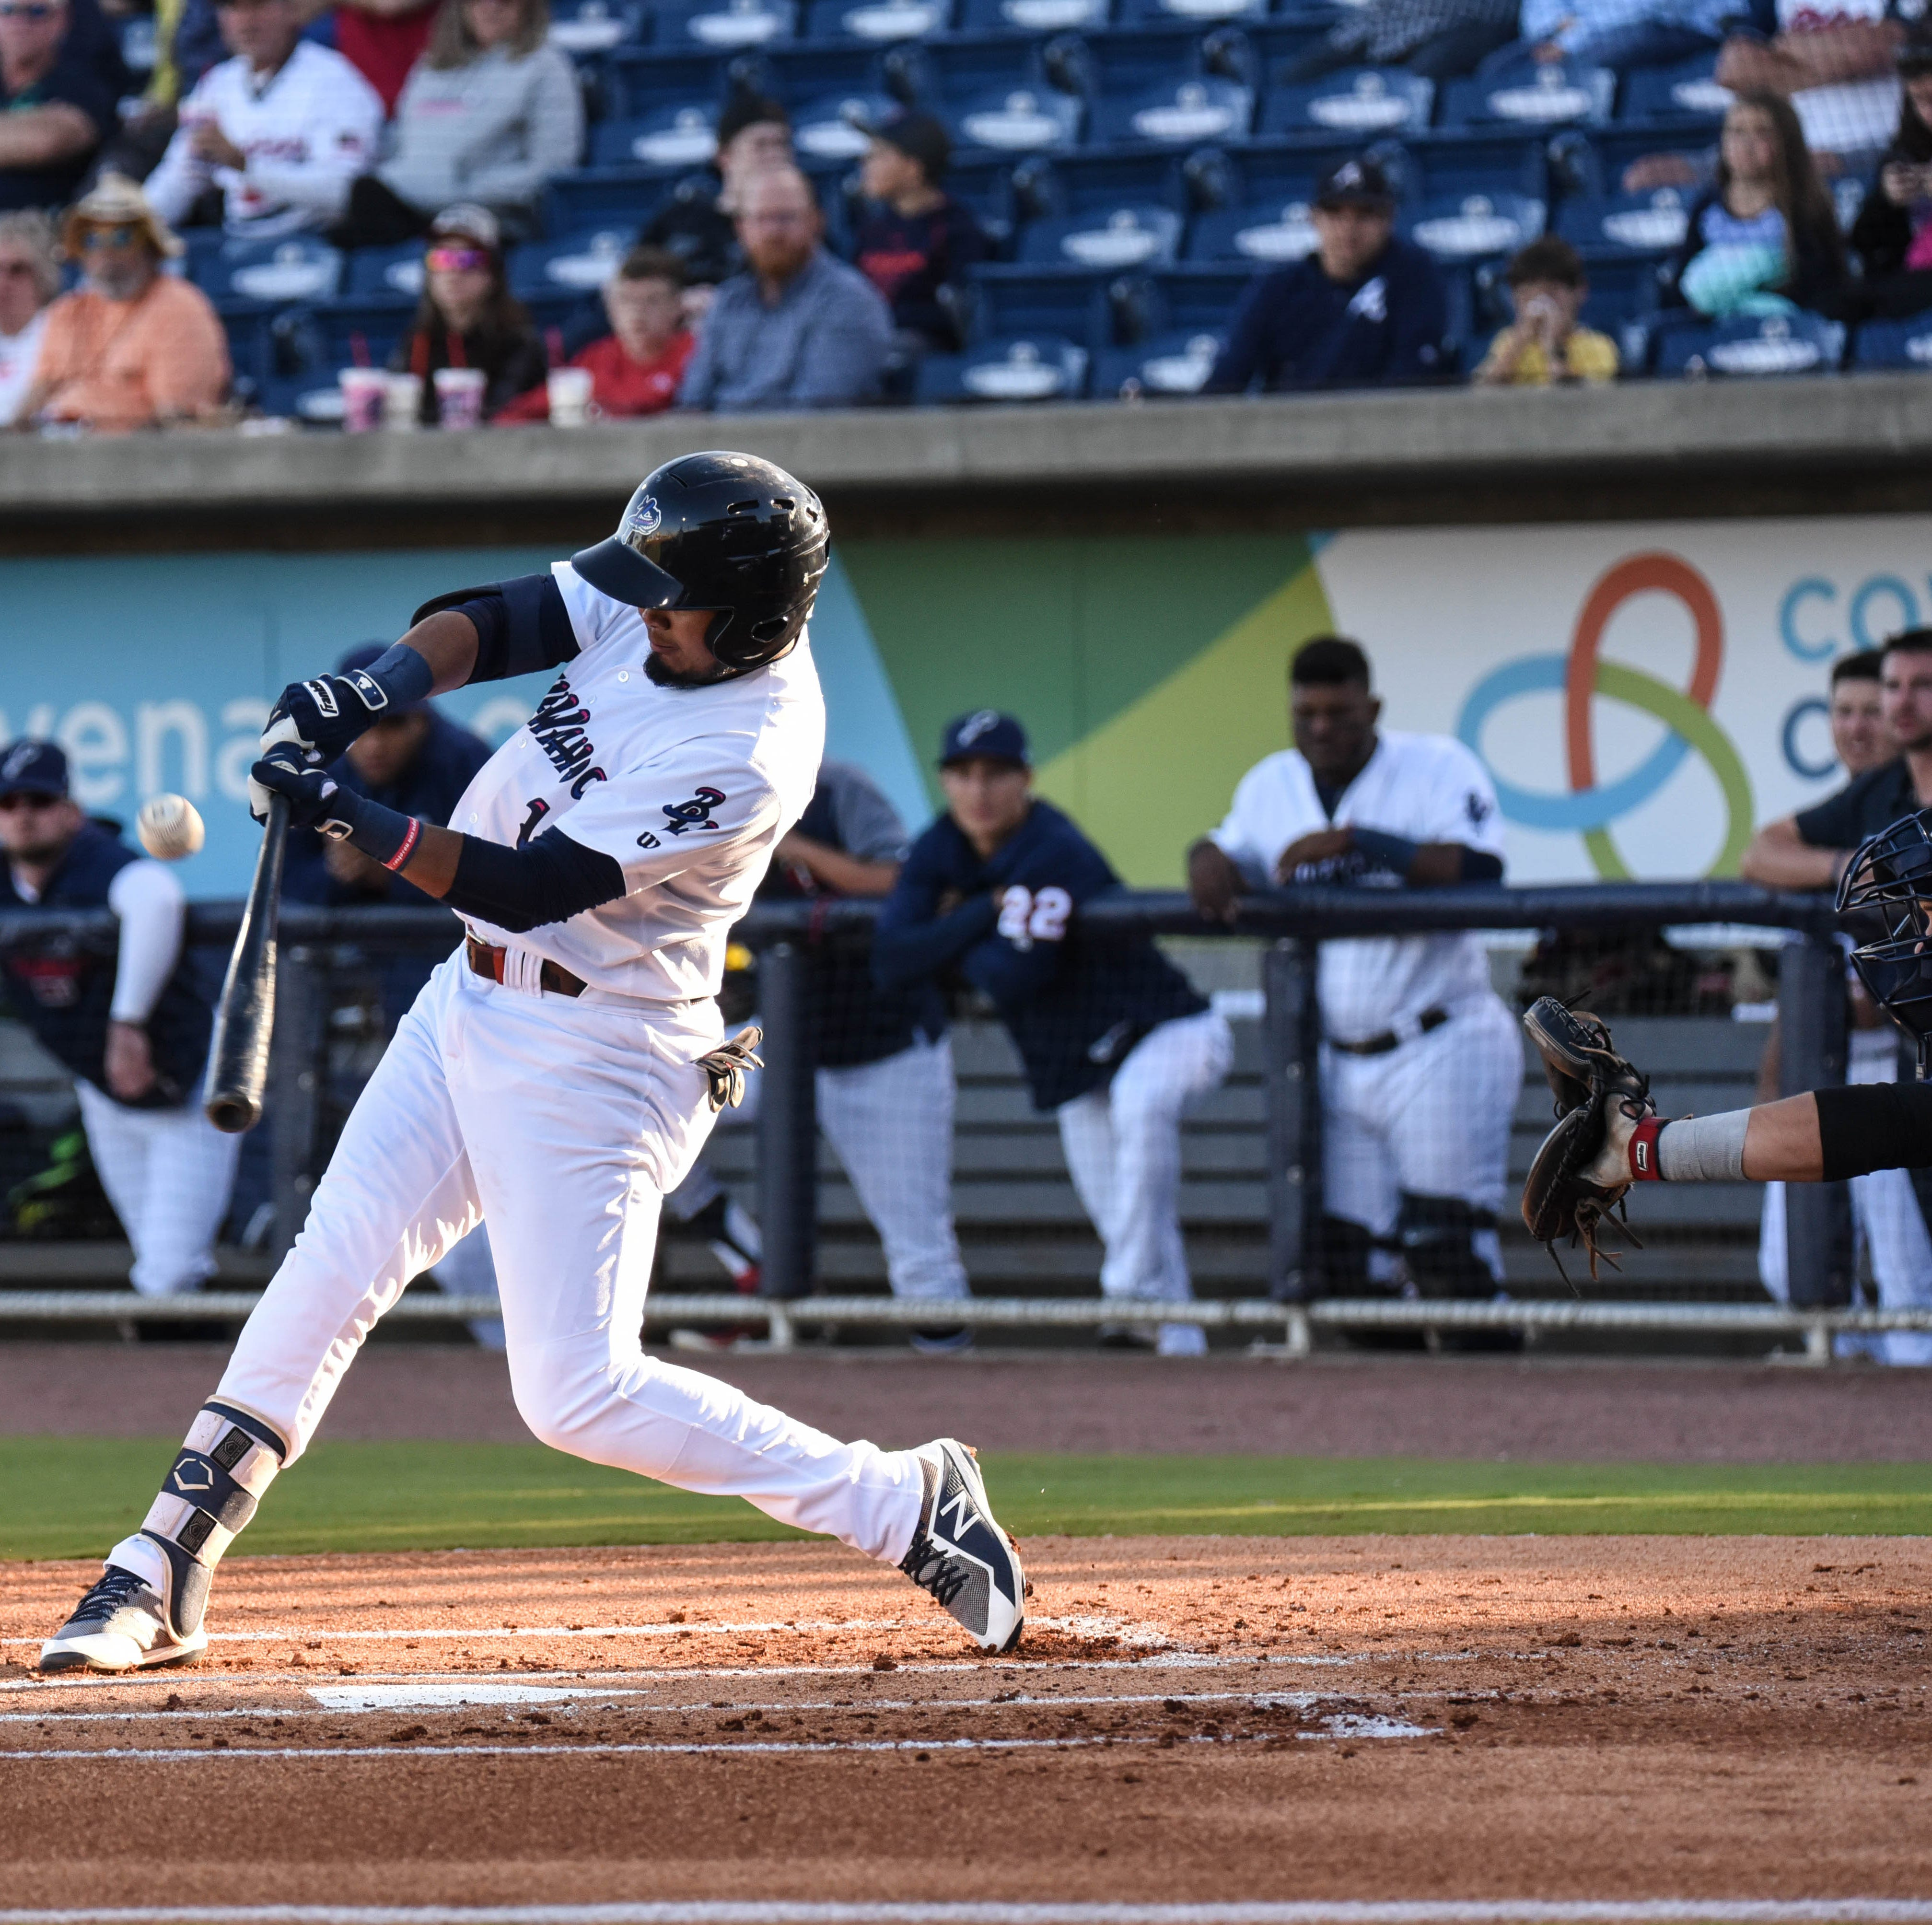 Luis Arraez rises to big leagues after stellar Blue Wahoos run